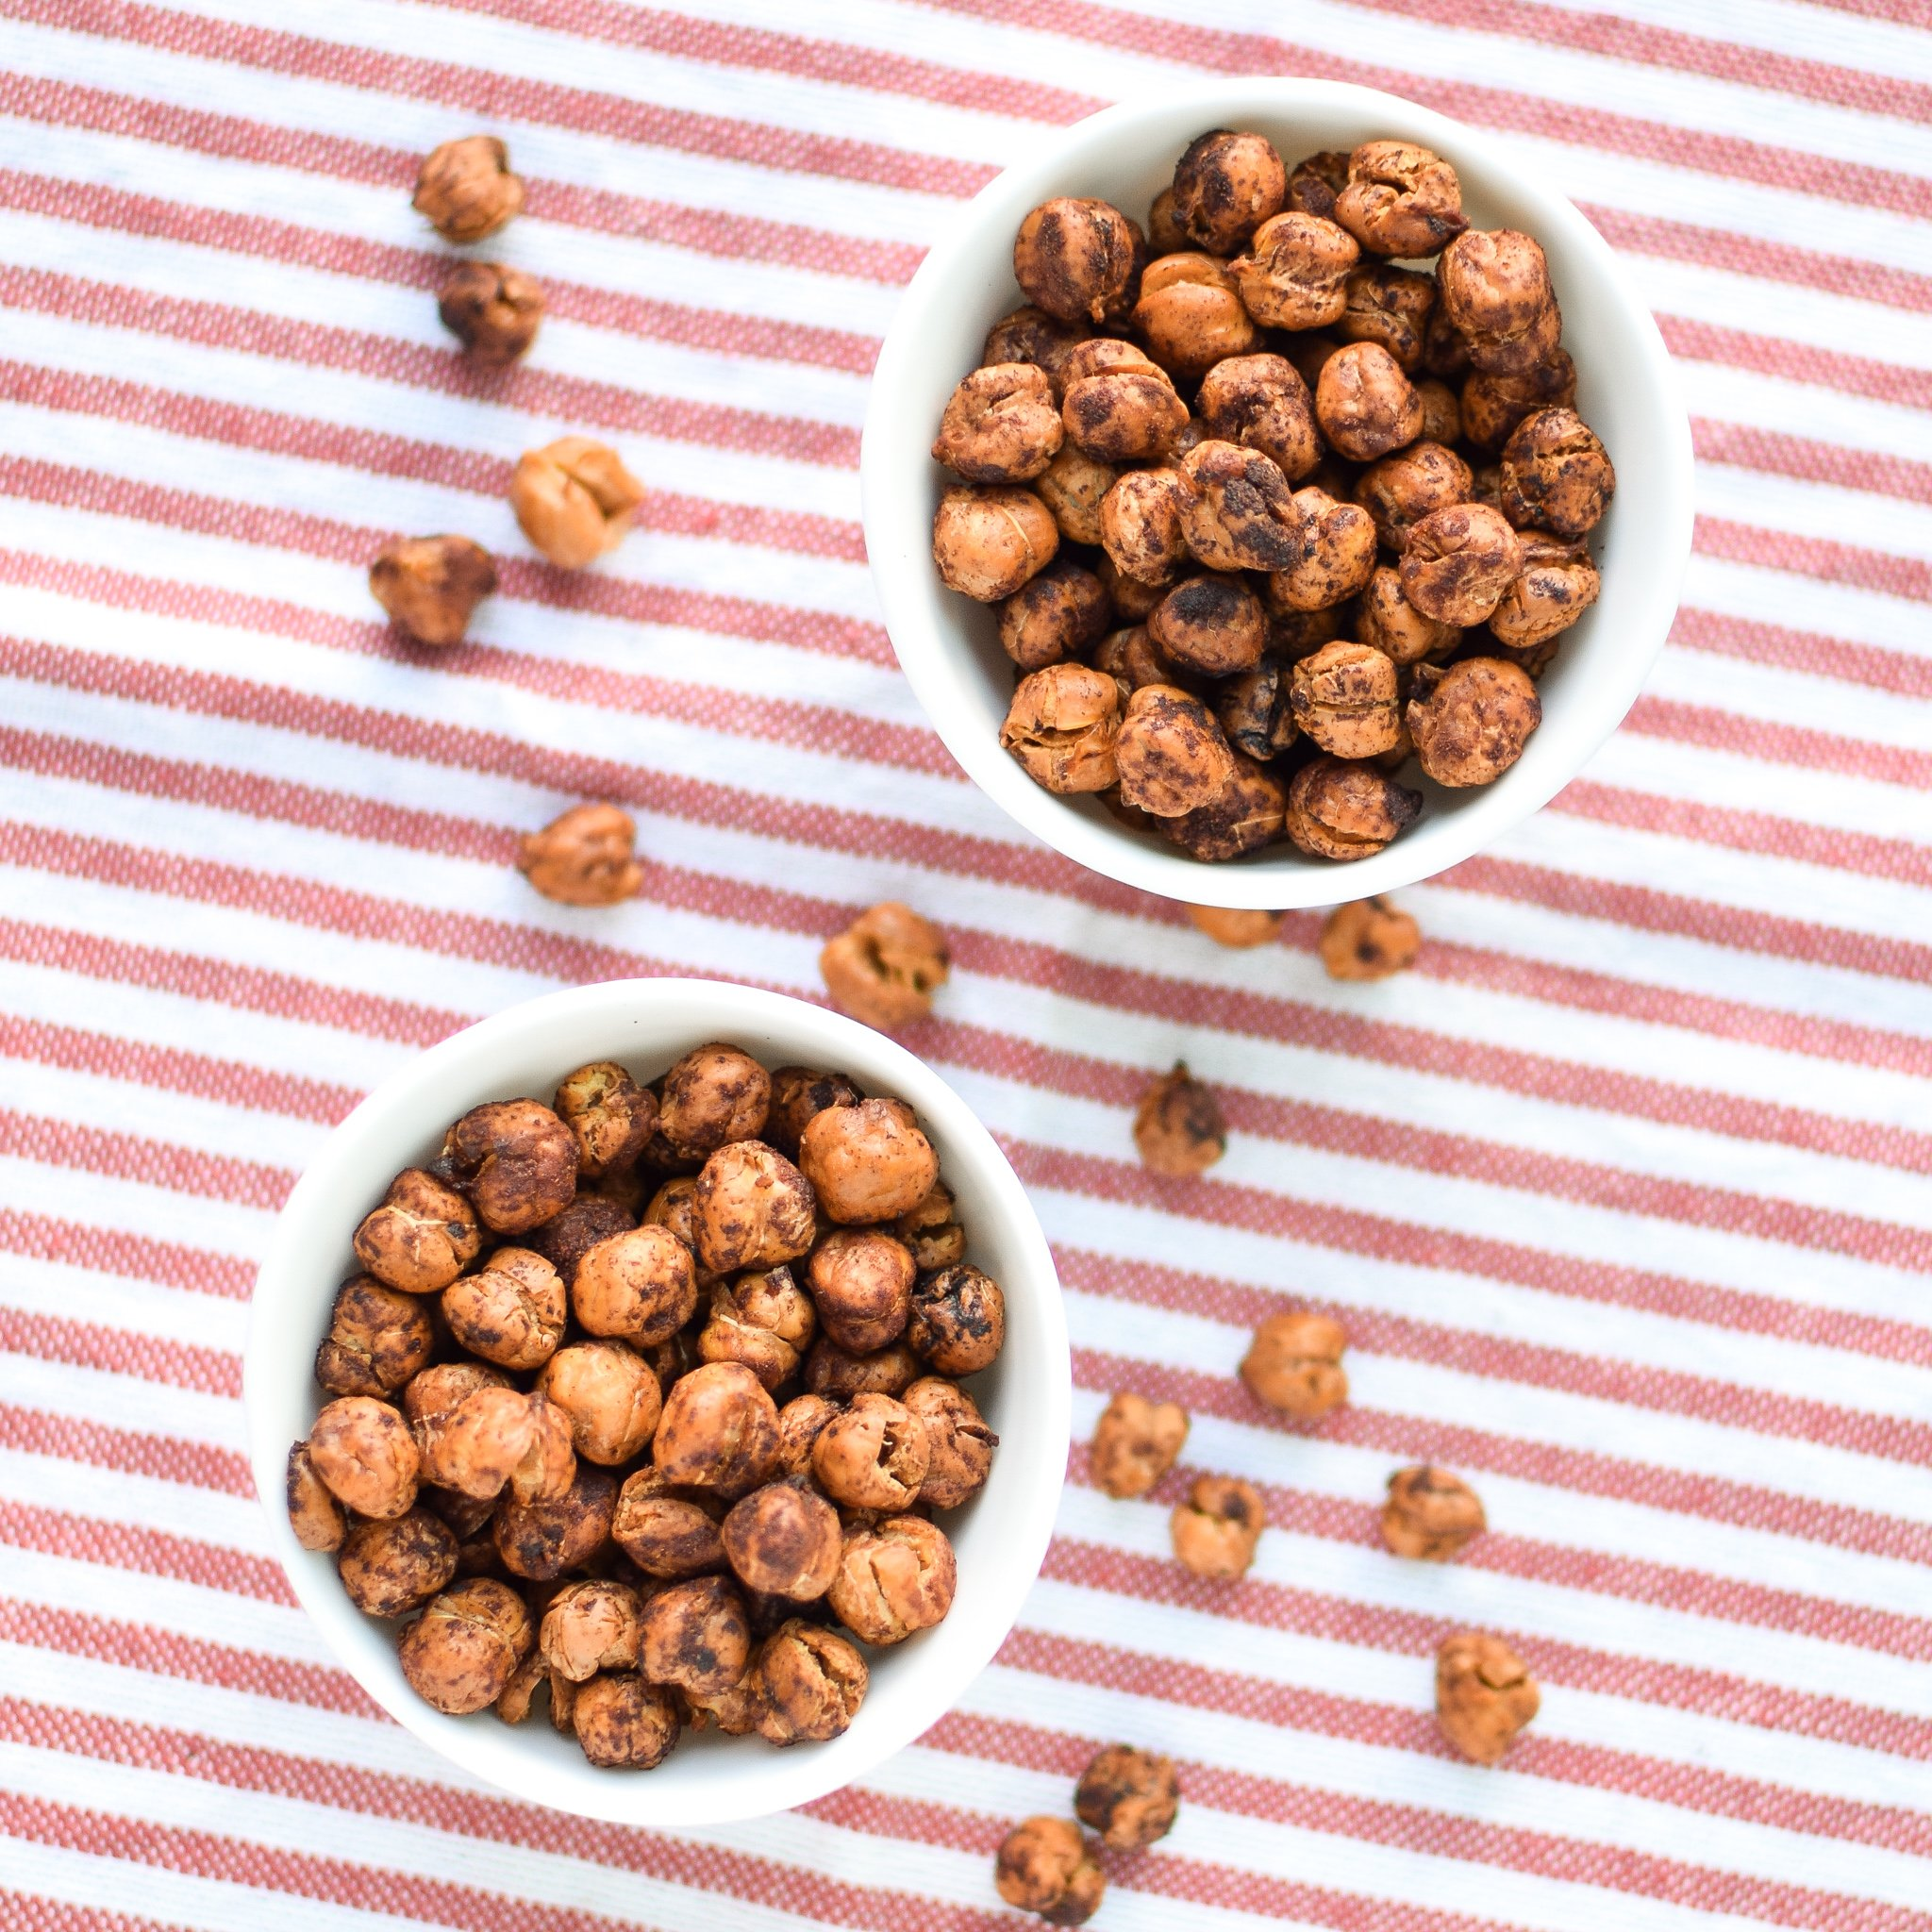 crispy cinnamon roasted chickpeas in bowls